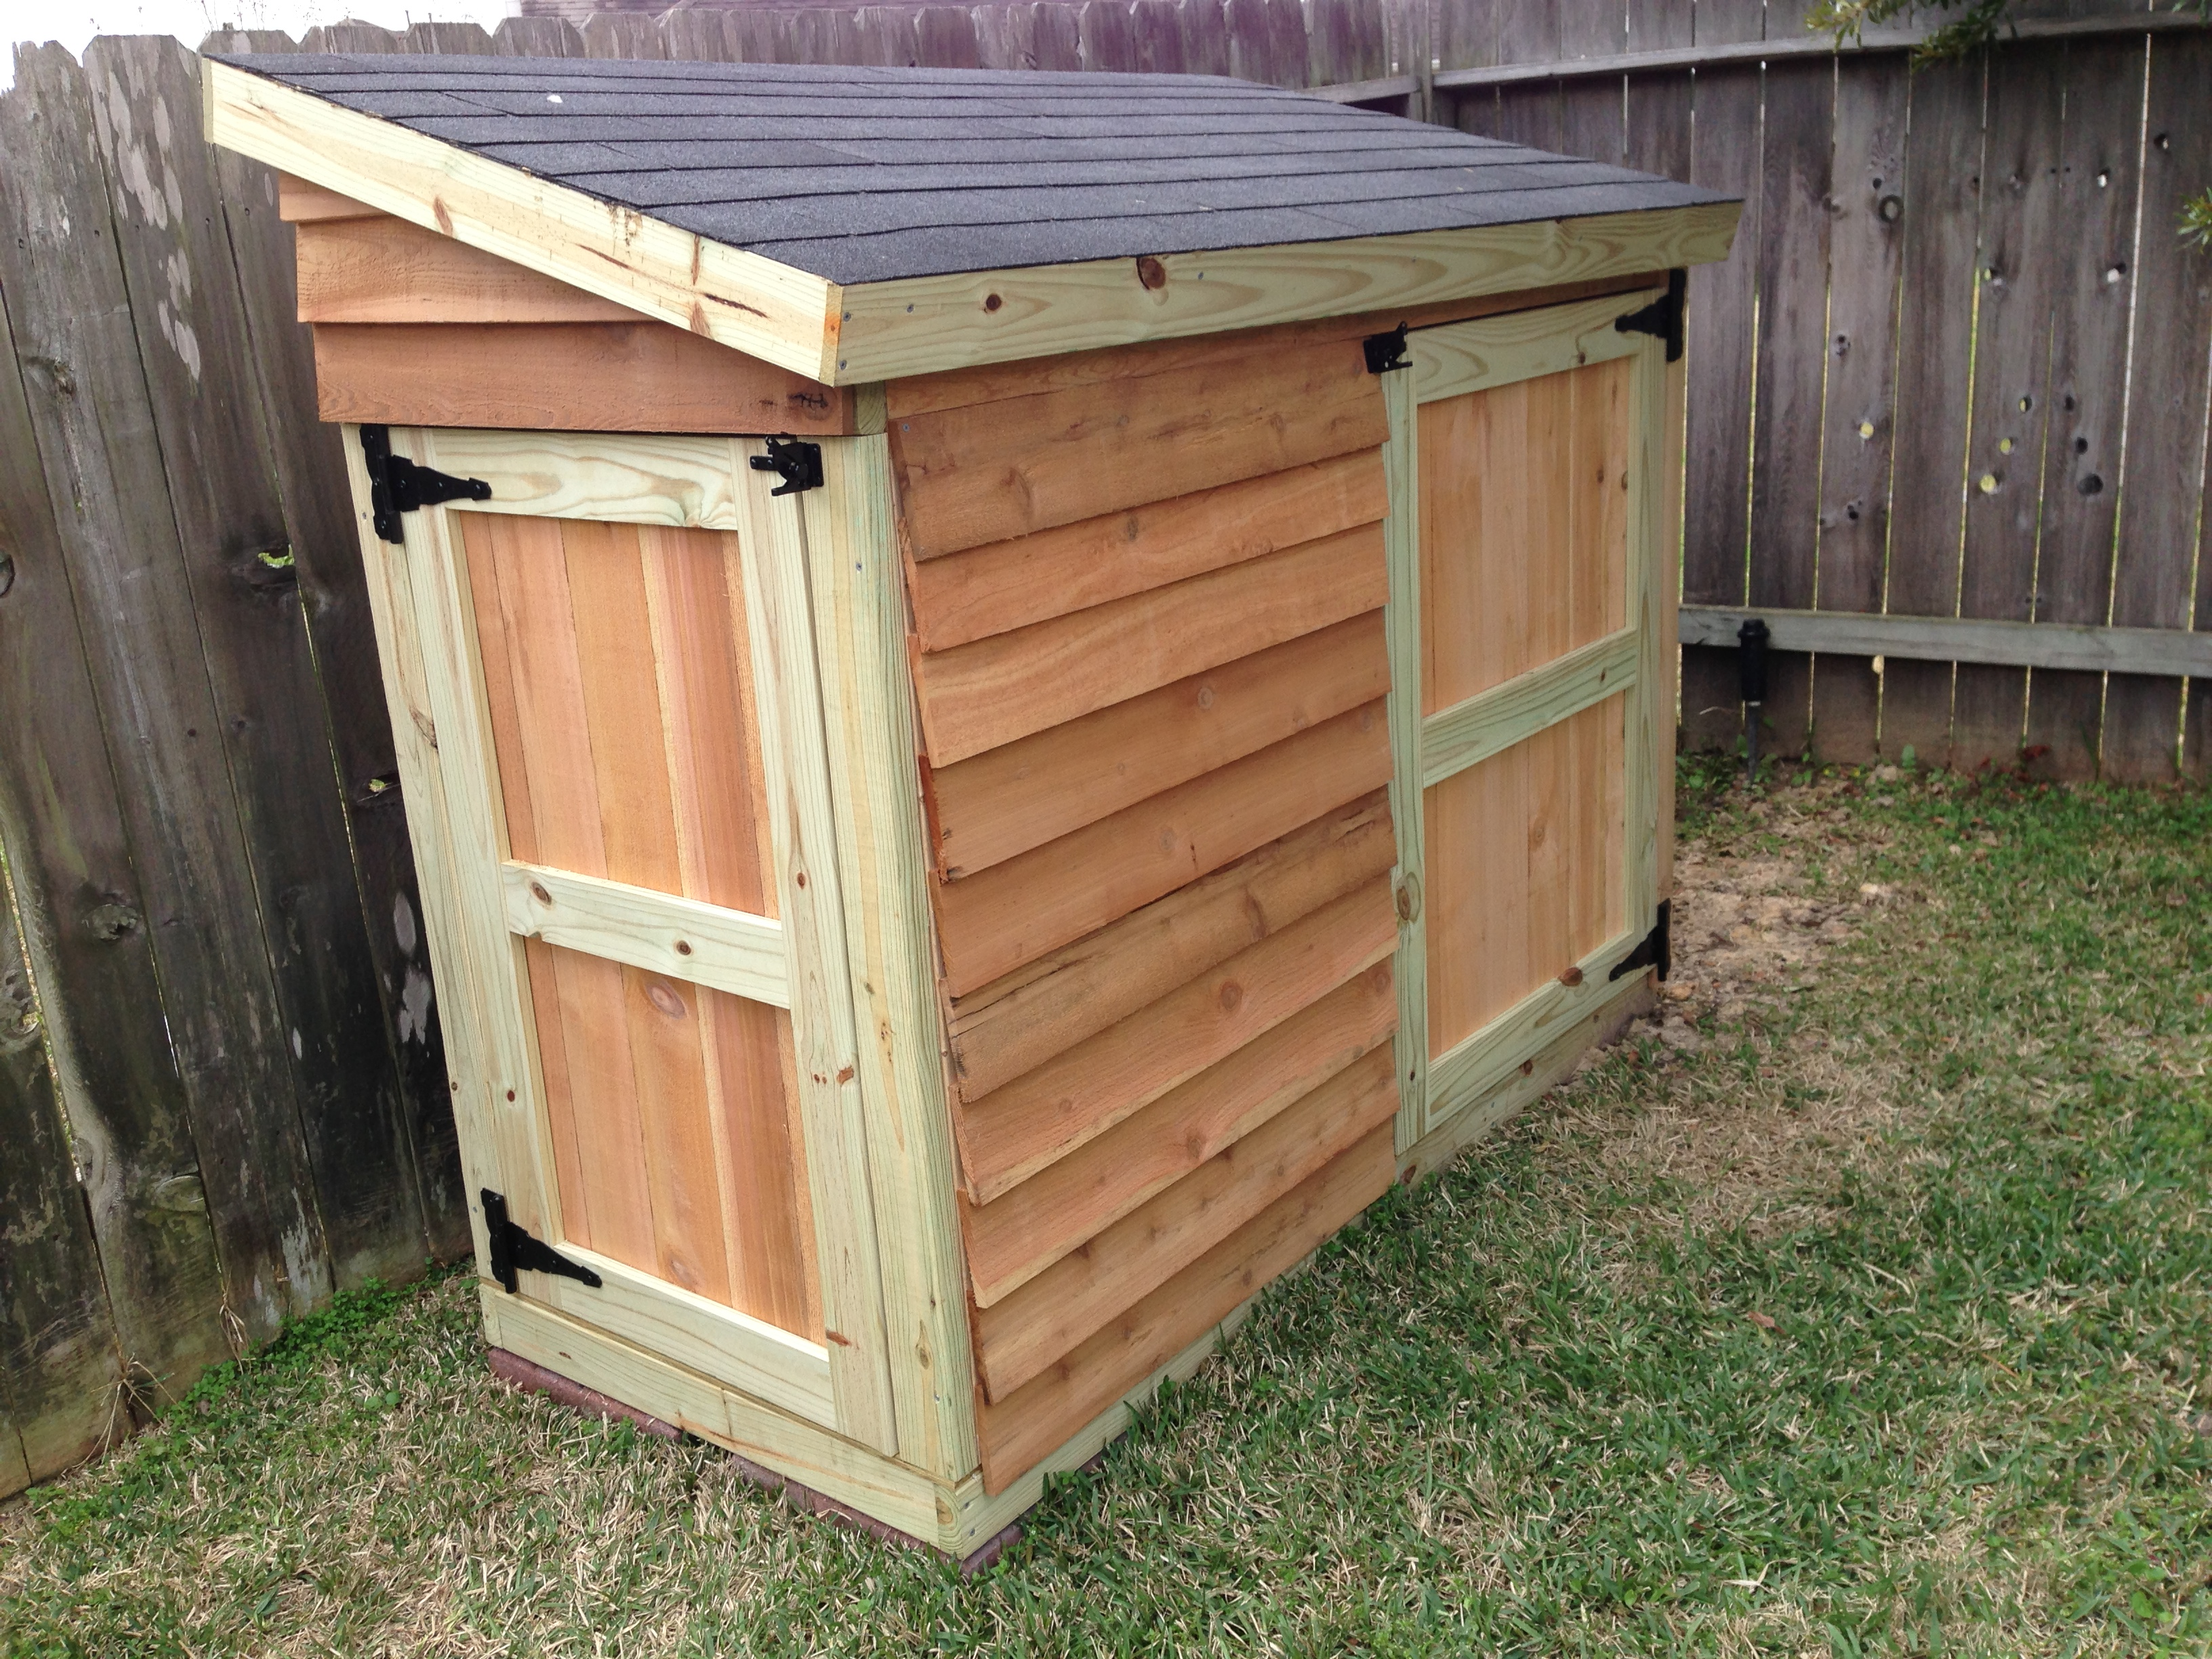 shed srage bins outdoor storage ideas patio building canadian plans backyard sheds tire installed